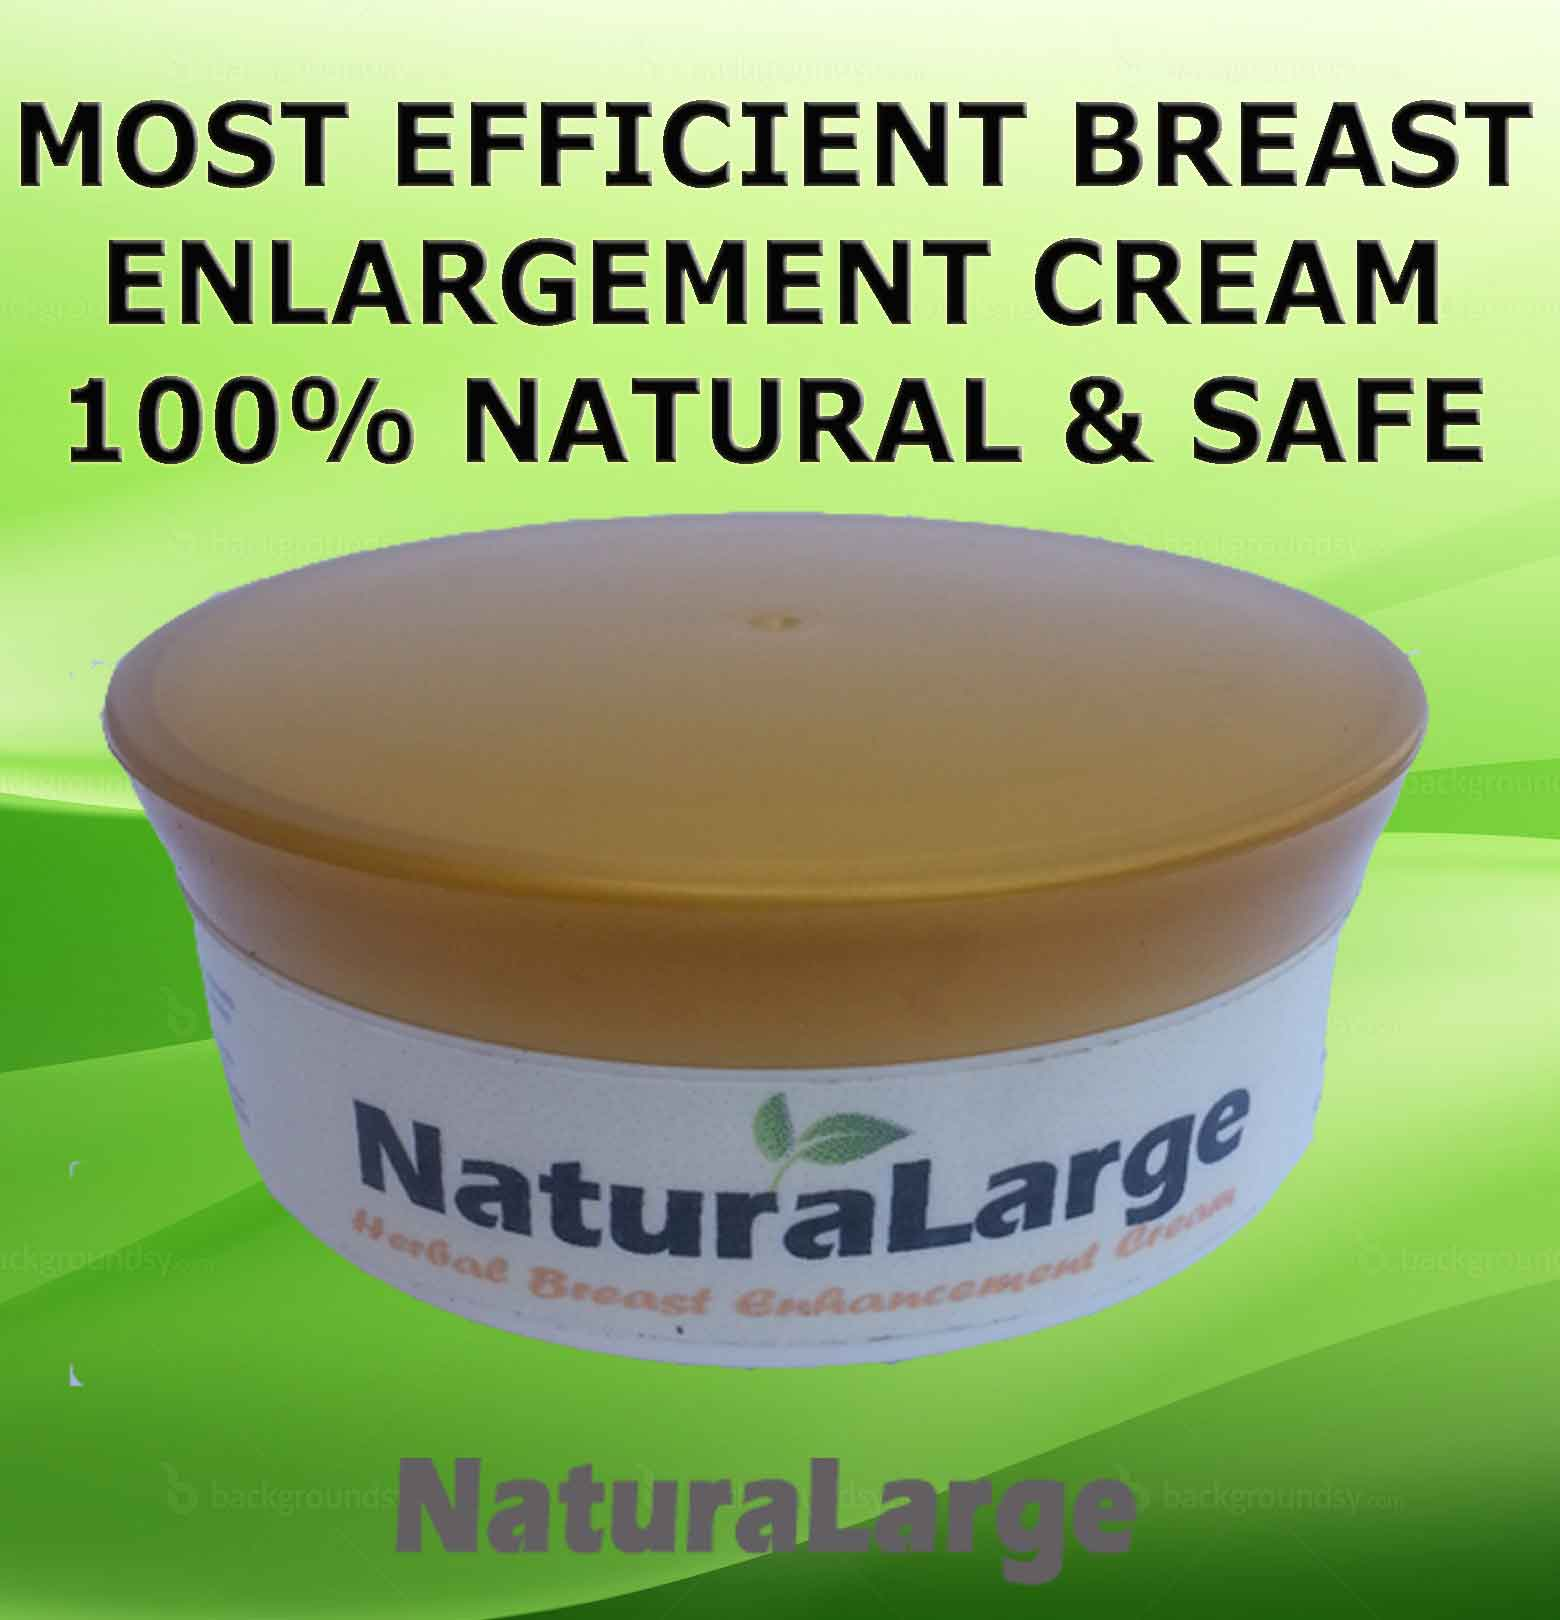 naturalarge breast enlargement cream